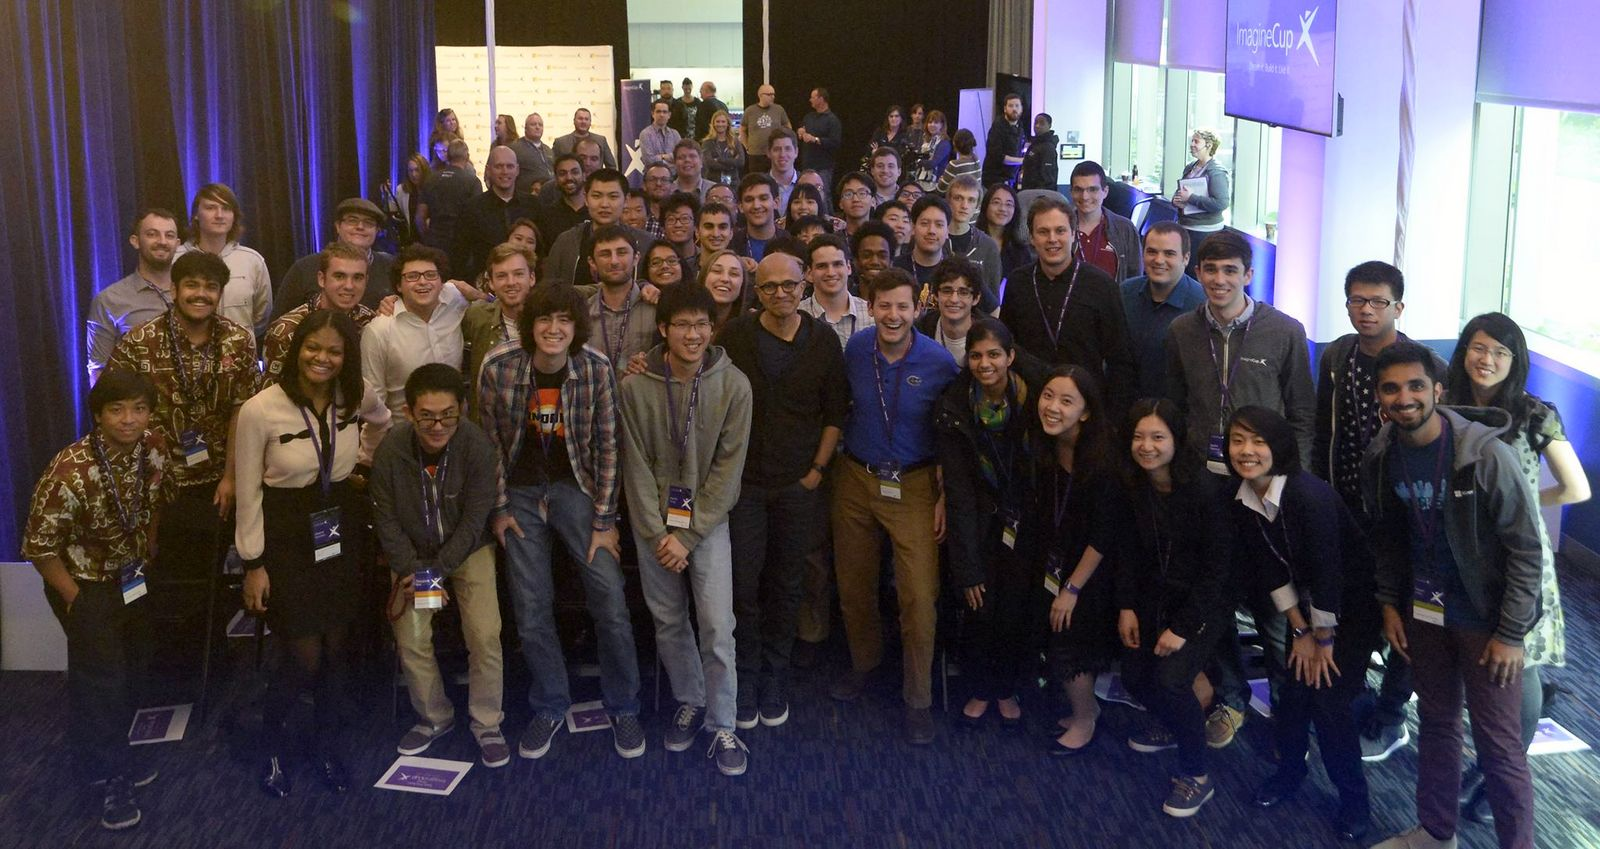 Group photo of all Imagine Cup teams standing together. UH Hilo team at front left in their aloha shirts.